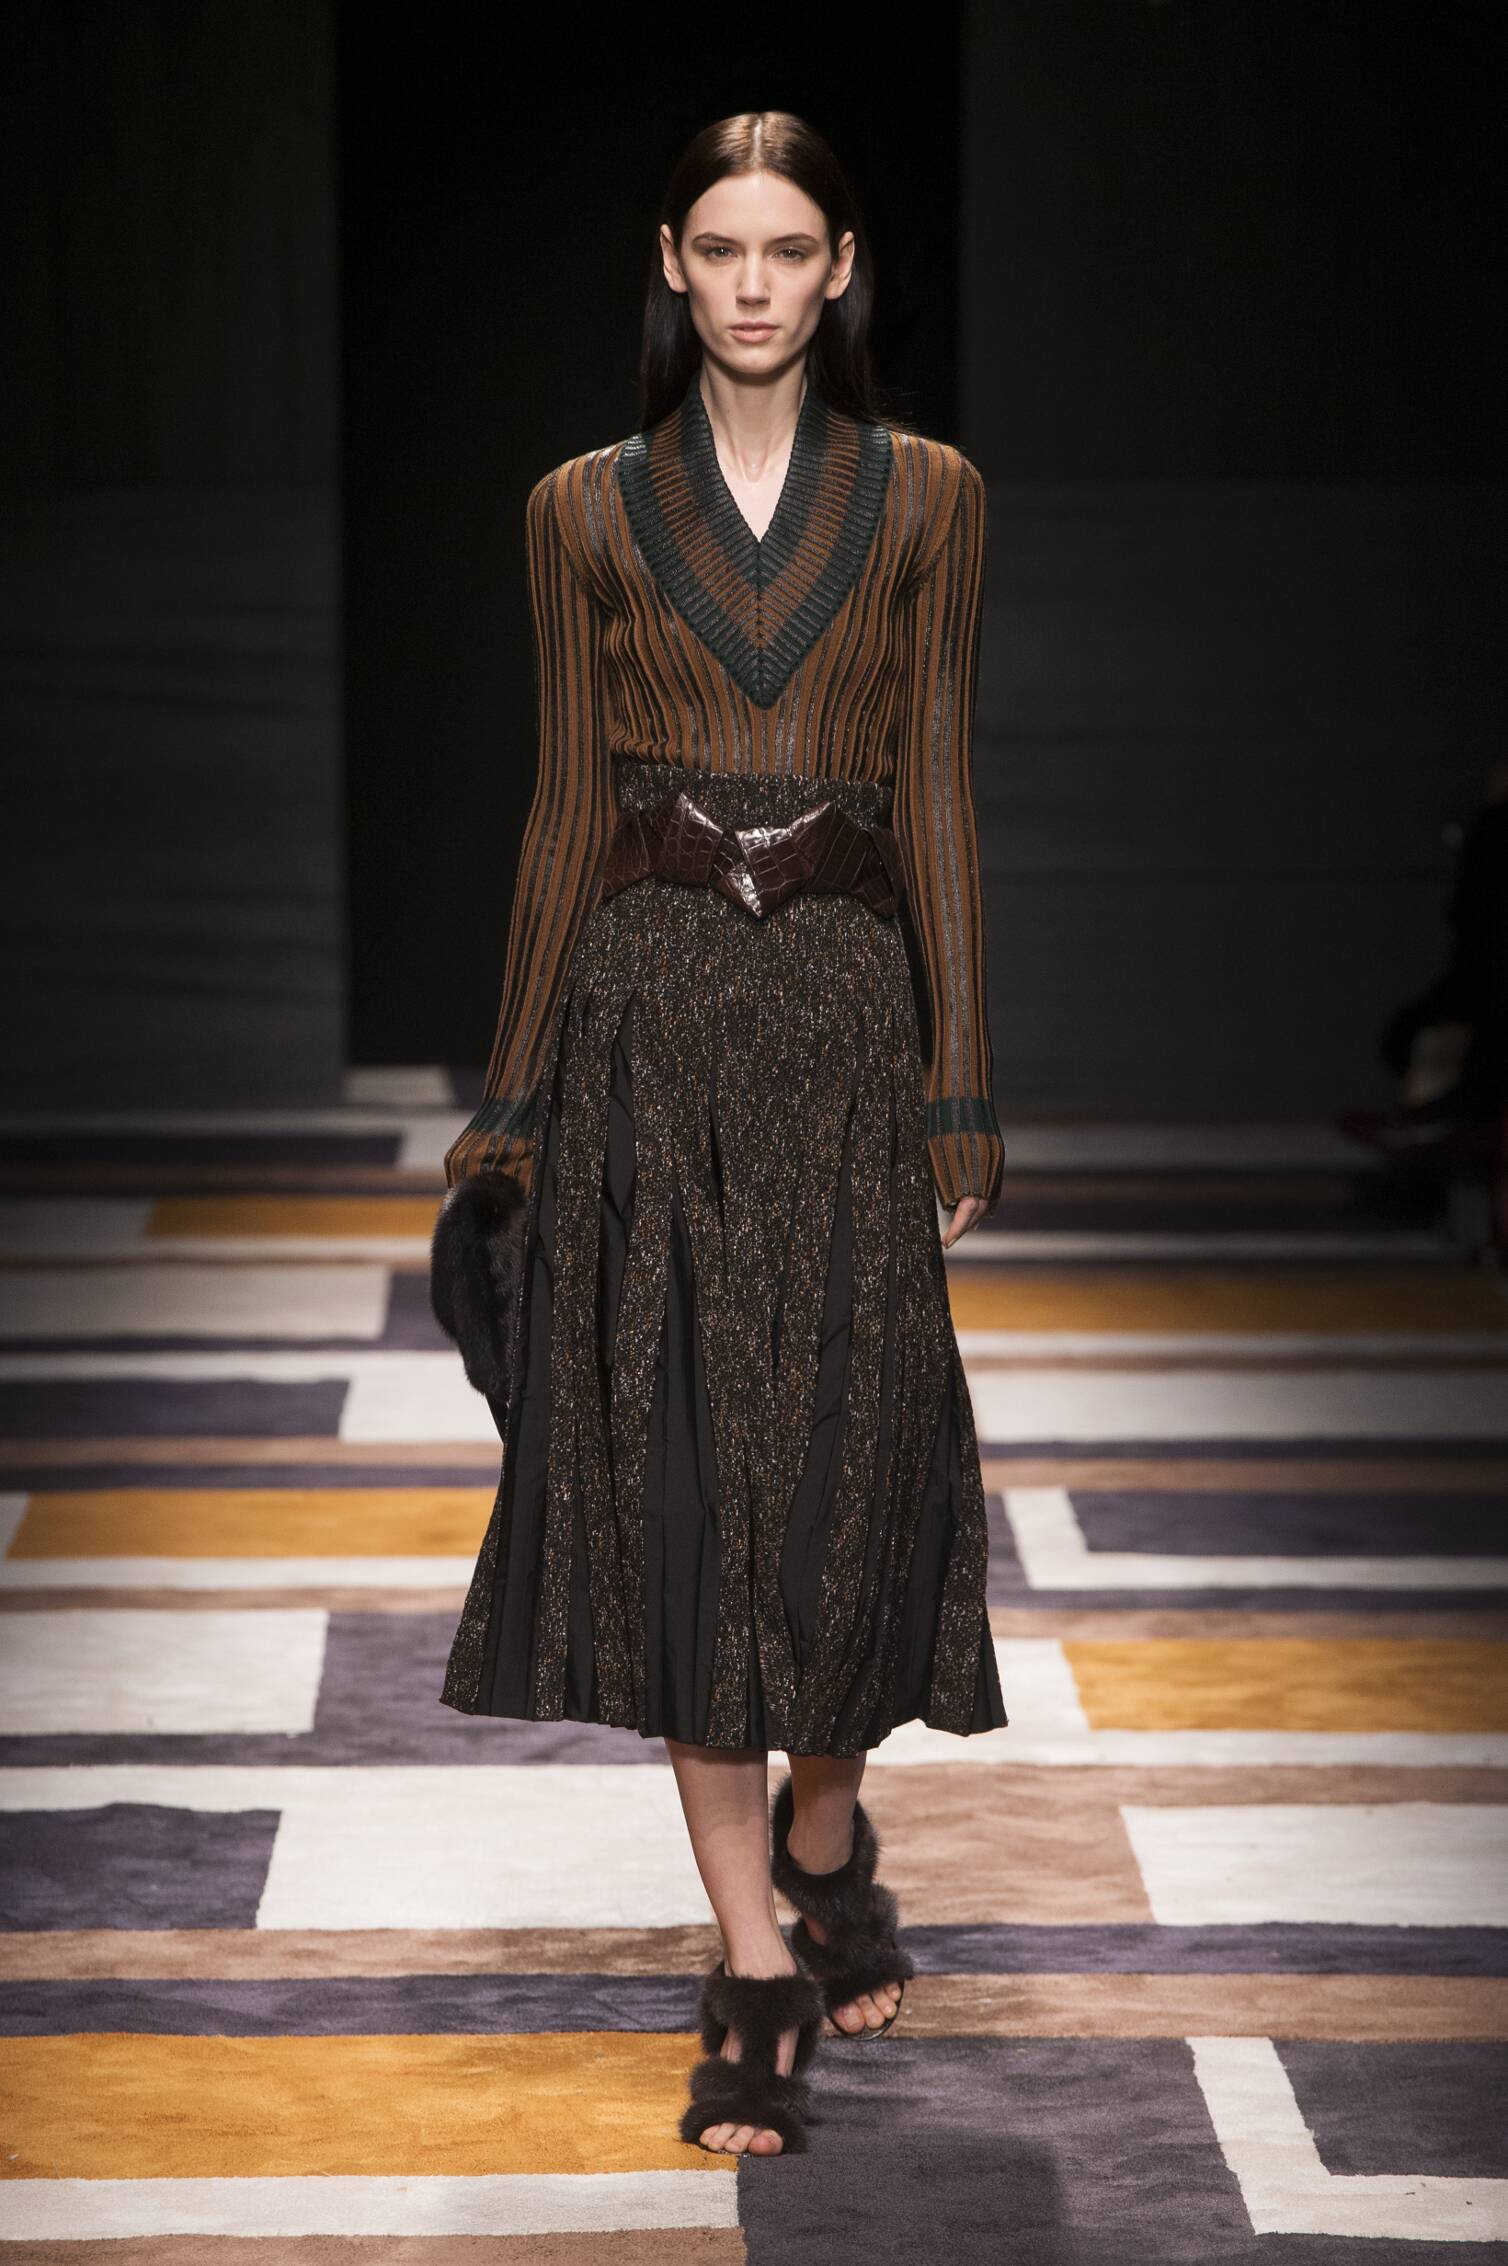 2015 Fashion Woman Model Salvatore Ferragamo Collection Catwalk